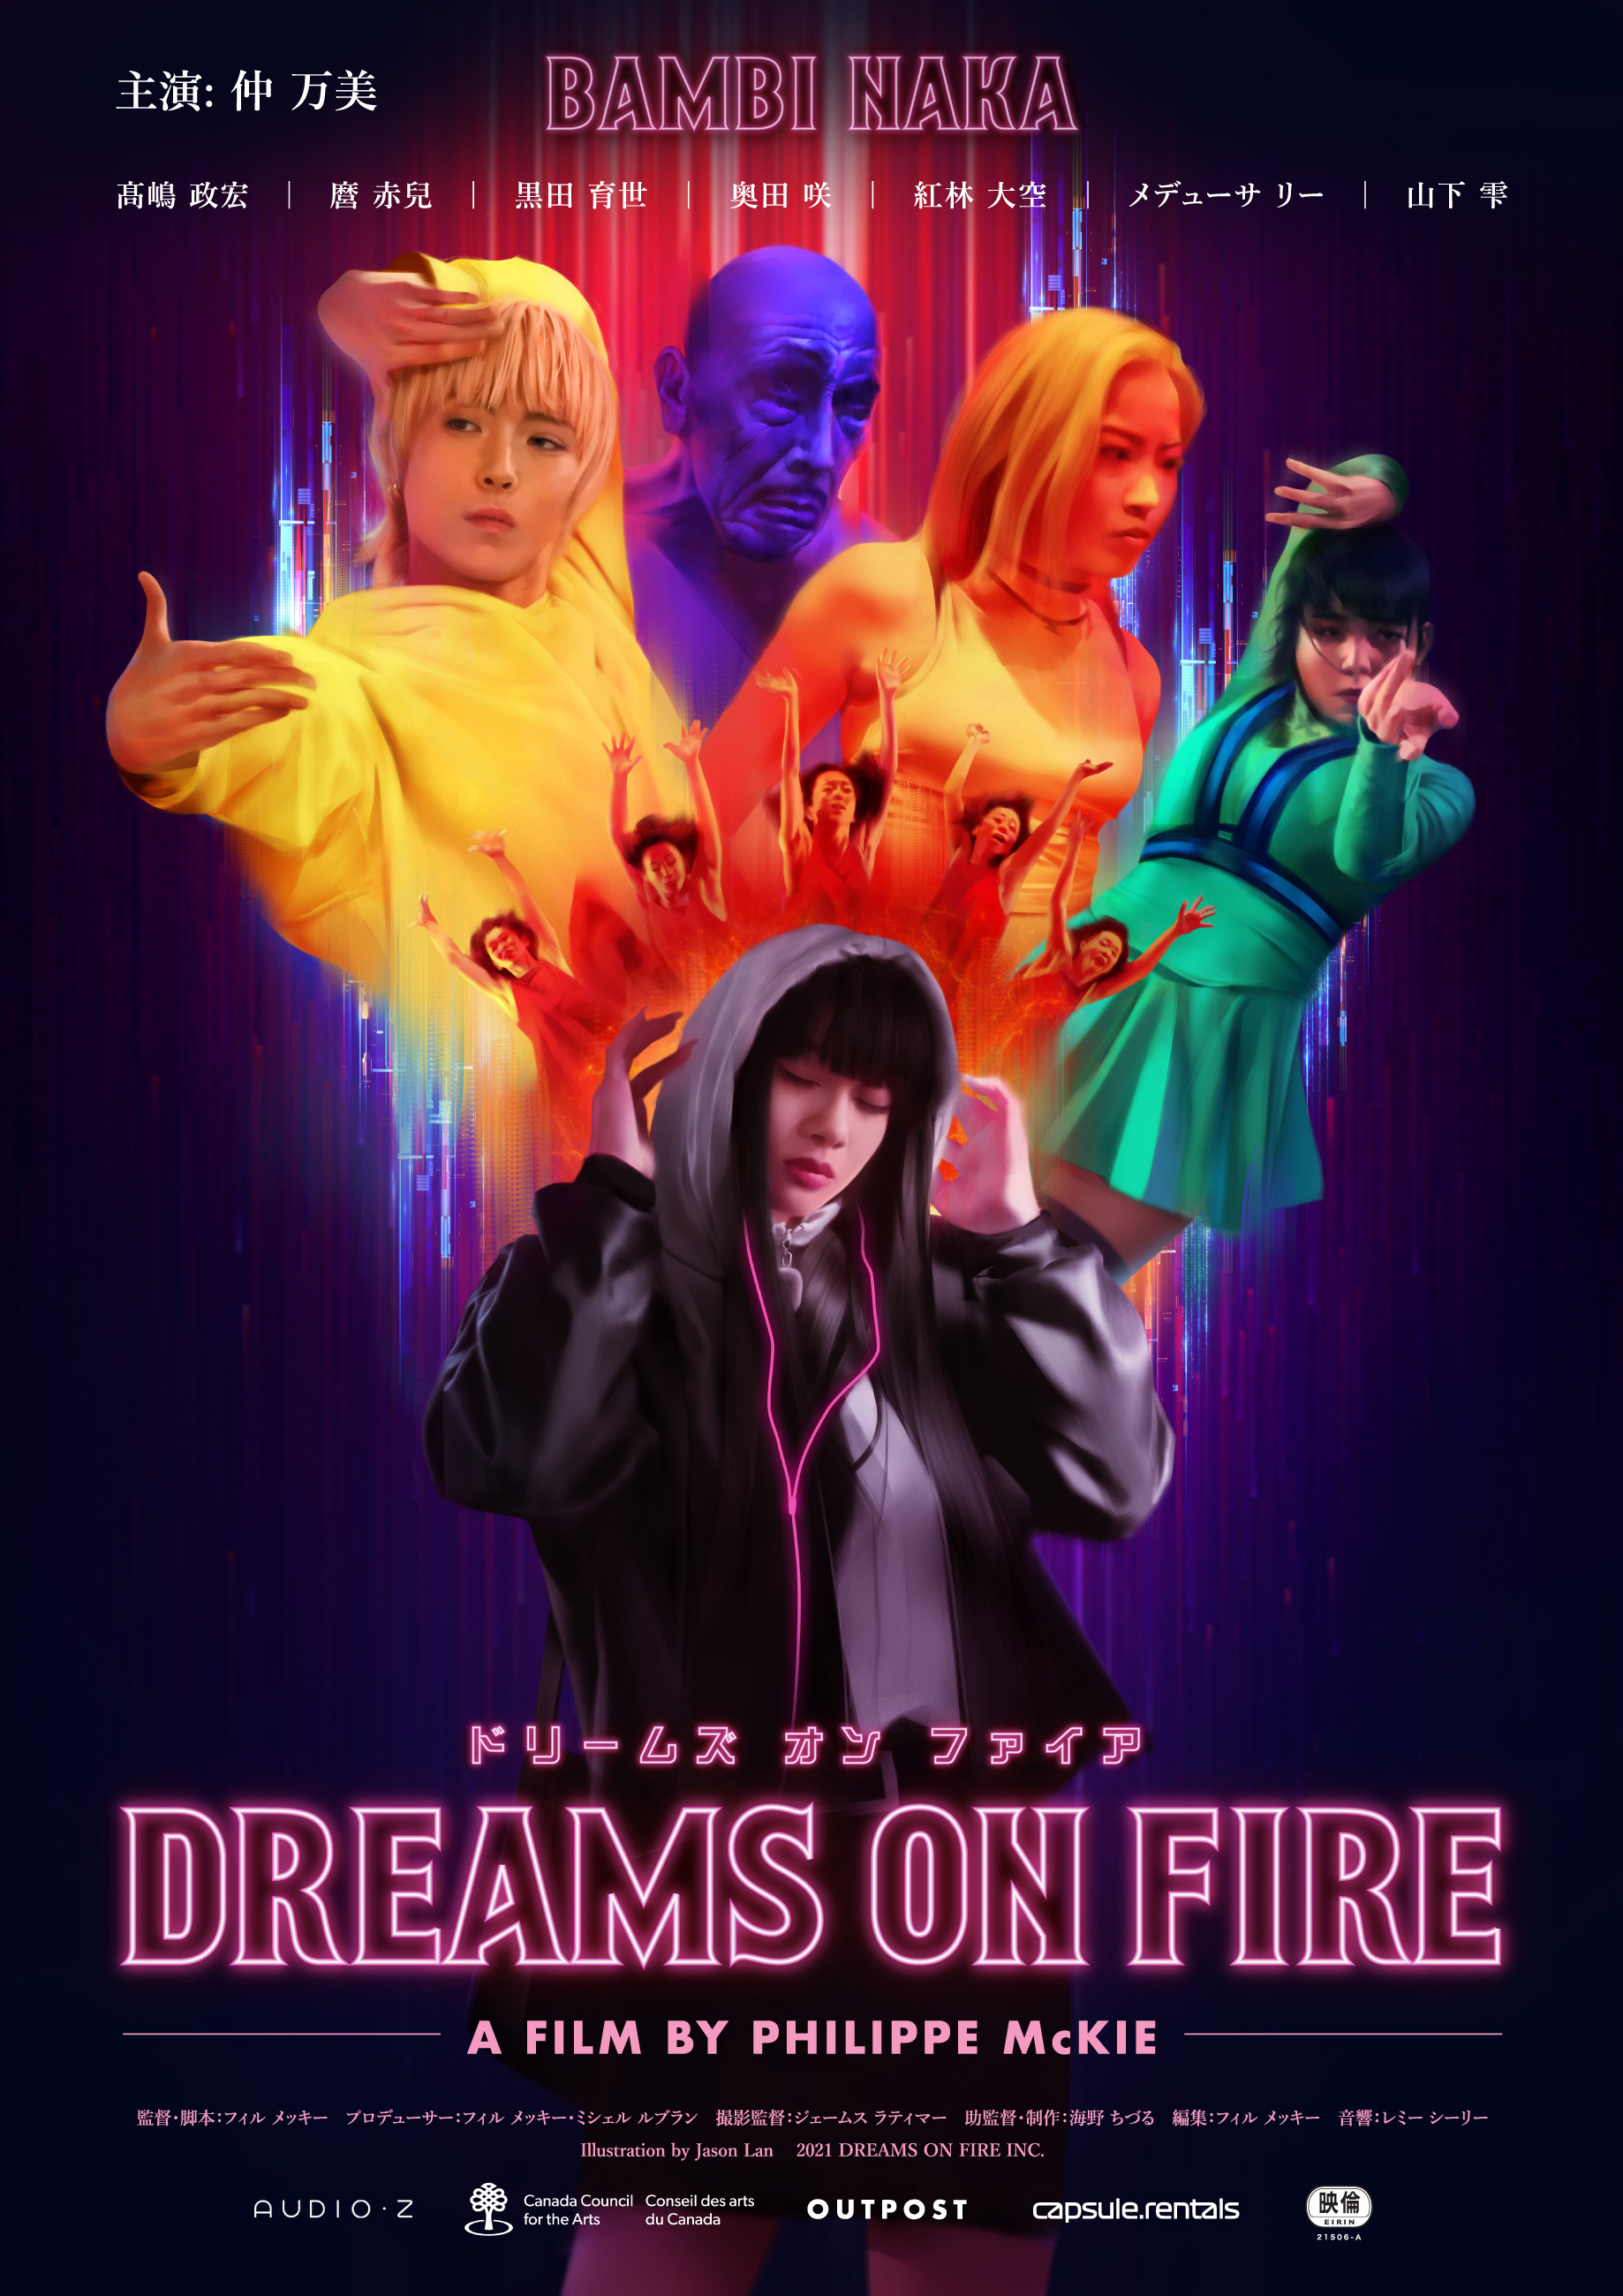 The poster for 'Dreams on Fire'. A young Japanese girl stands with her hood up, eyes closed, and headphones on. Colourful figures surround her, shown in various dance poses.